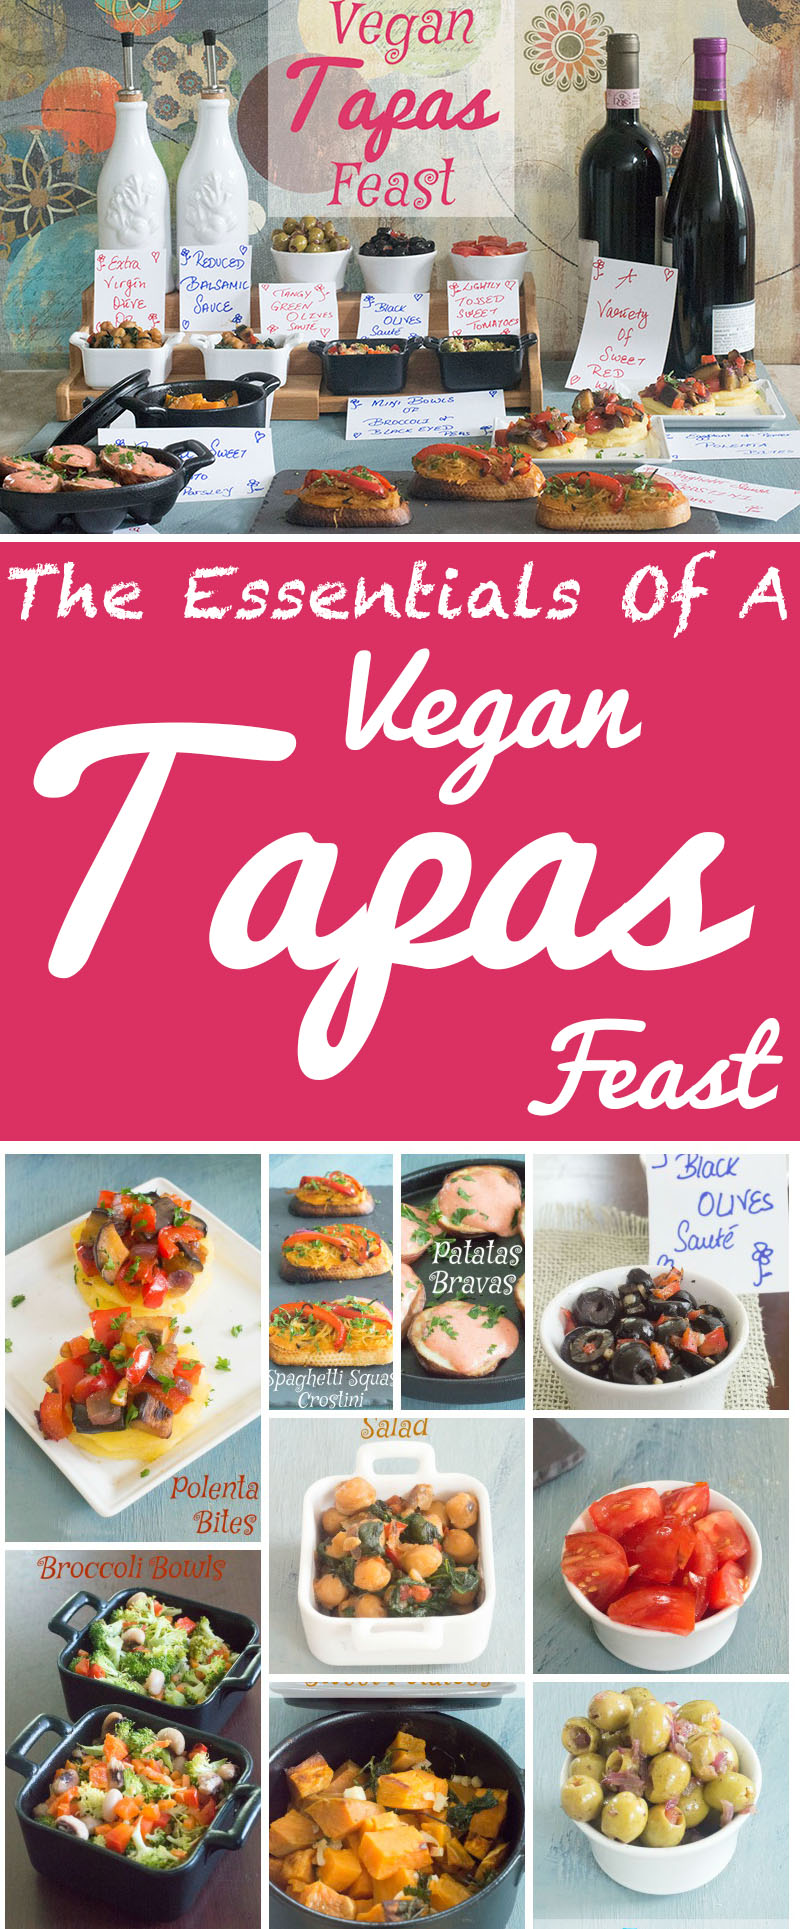 A vegan tapas bar that is a feast to be shared among friends. Made with fresh ingredients such as veggies and lentils. A very healthy vegan snack feast